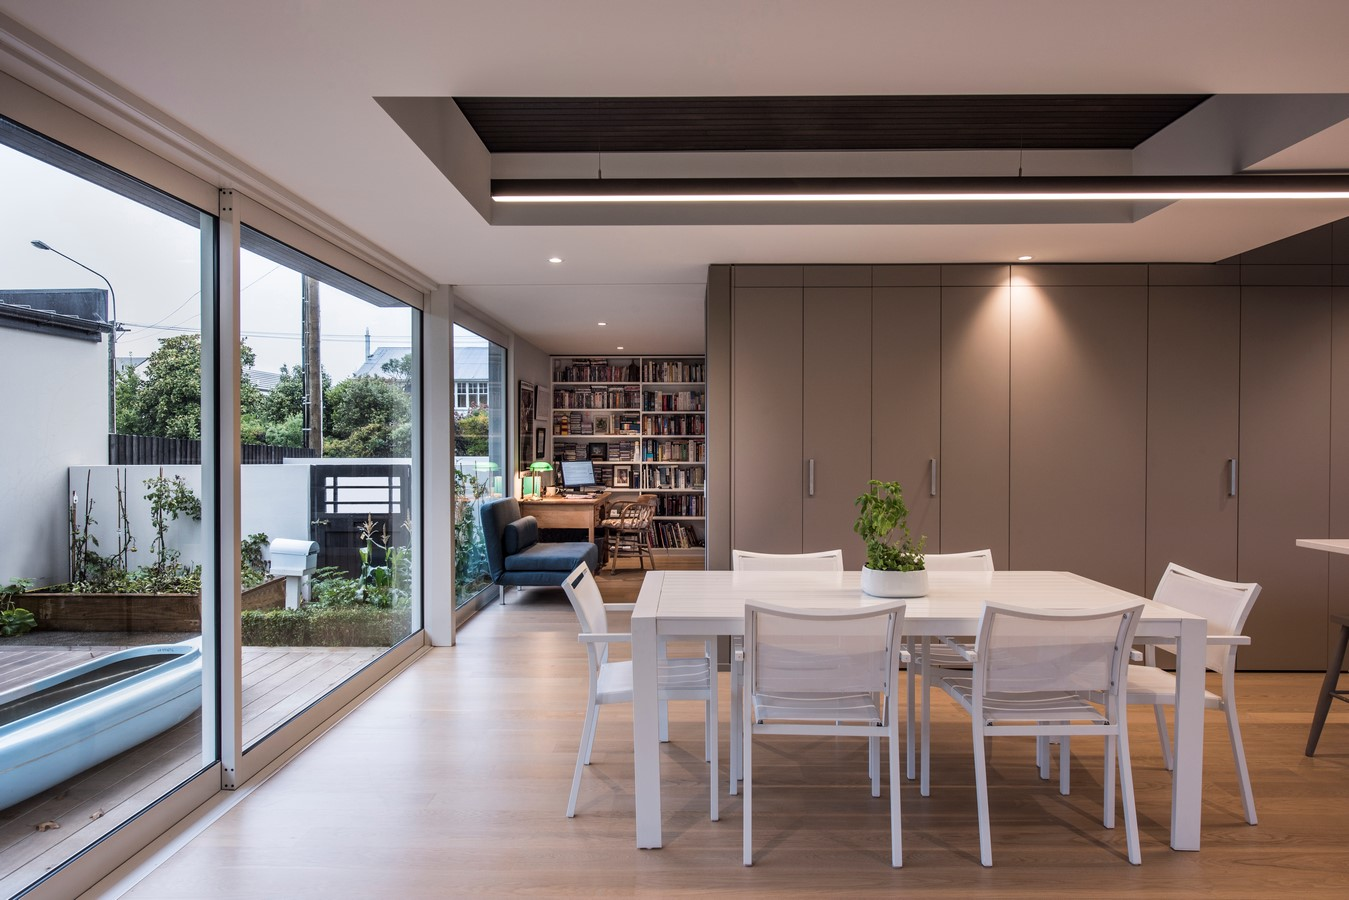 Idris Road Home by South Architects - Sheet1